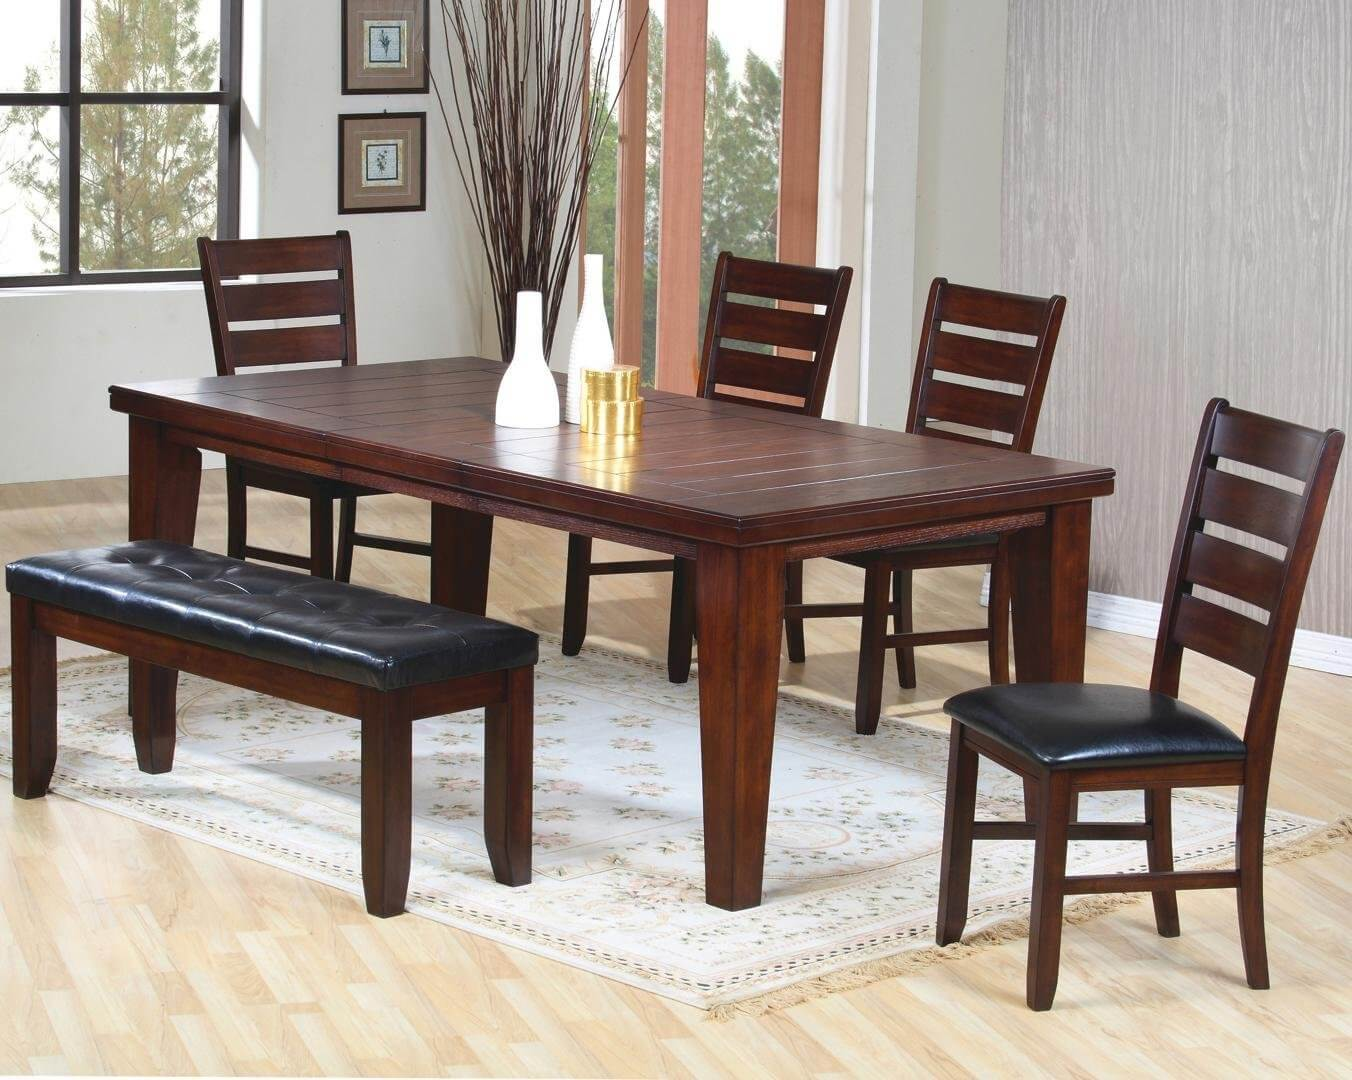 Dining Room Table With Chairs 26 Big And Small Dining Room Sets With Bench Seating